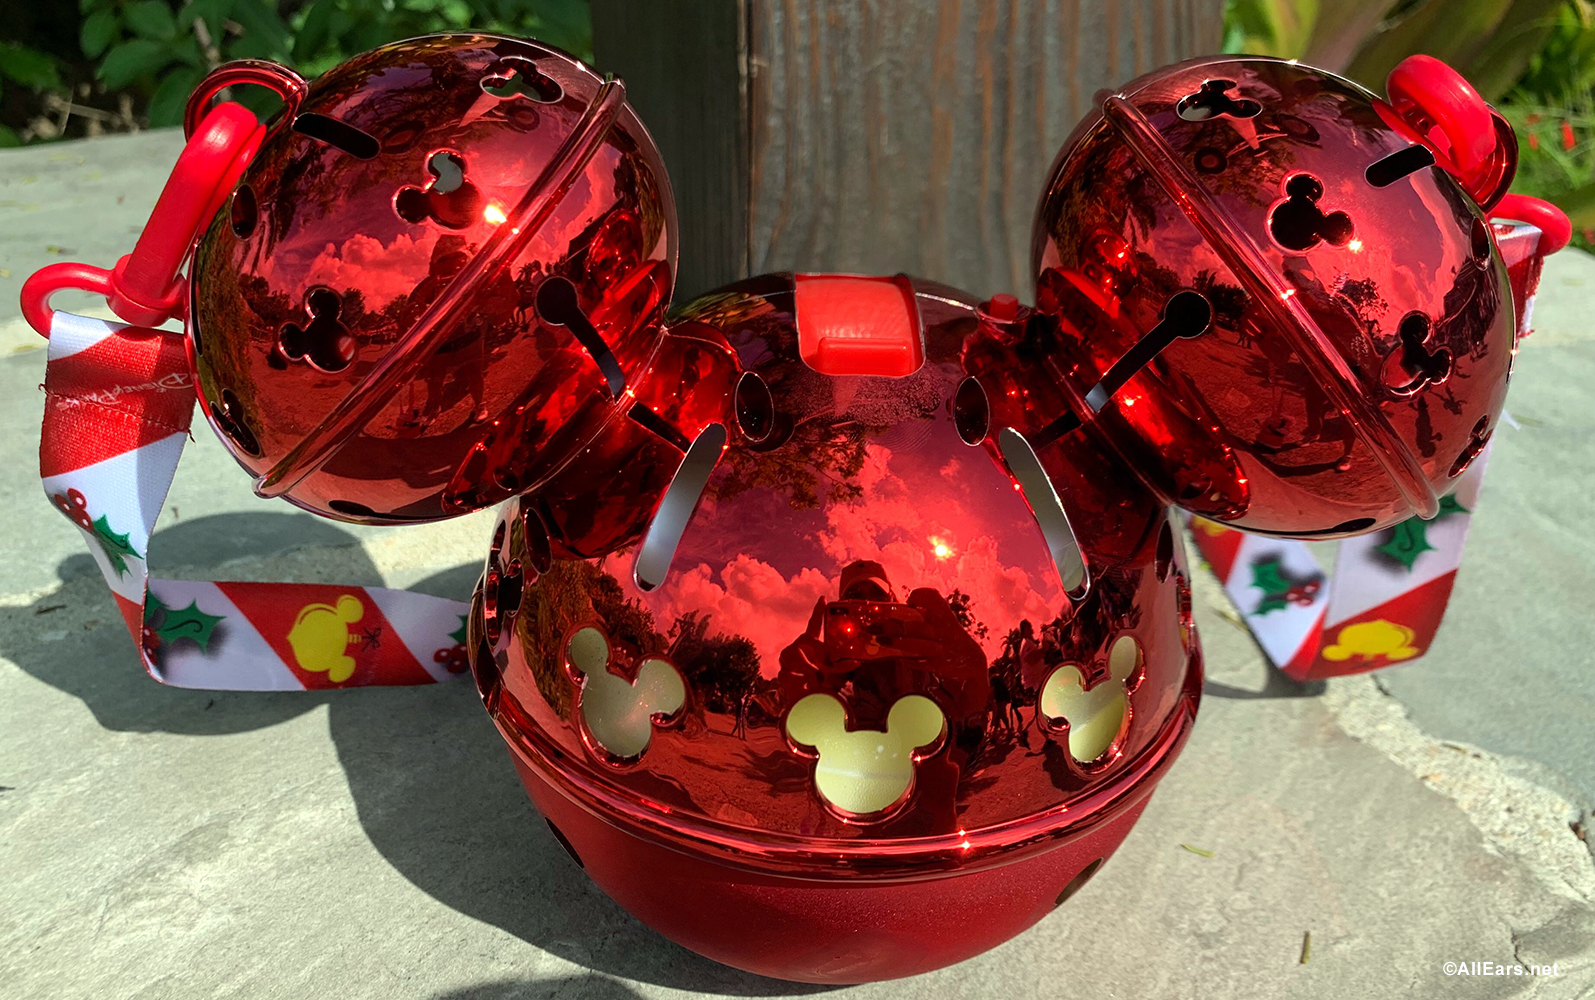 Disney Christmas Drink 2020 Photos: New Must Have Christmas Popcorn Buckets and Drink Sippers